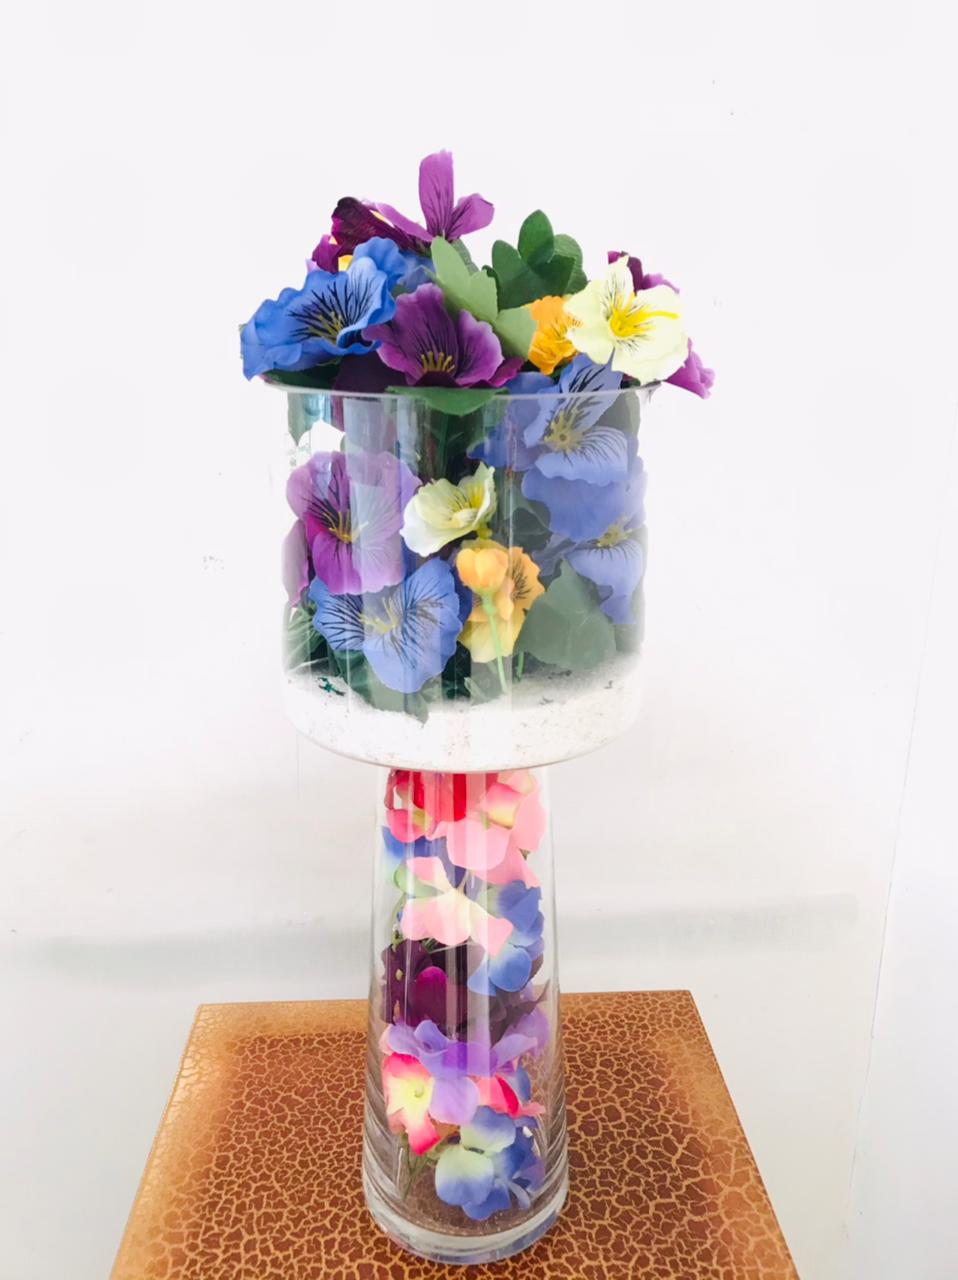 Artificial Floral Arrangement (h:43cm w:15cm)